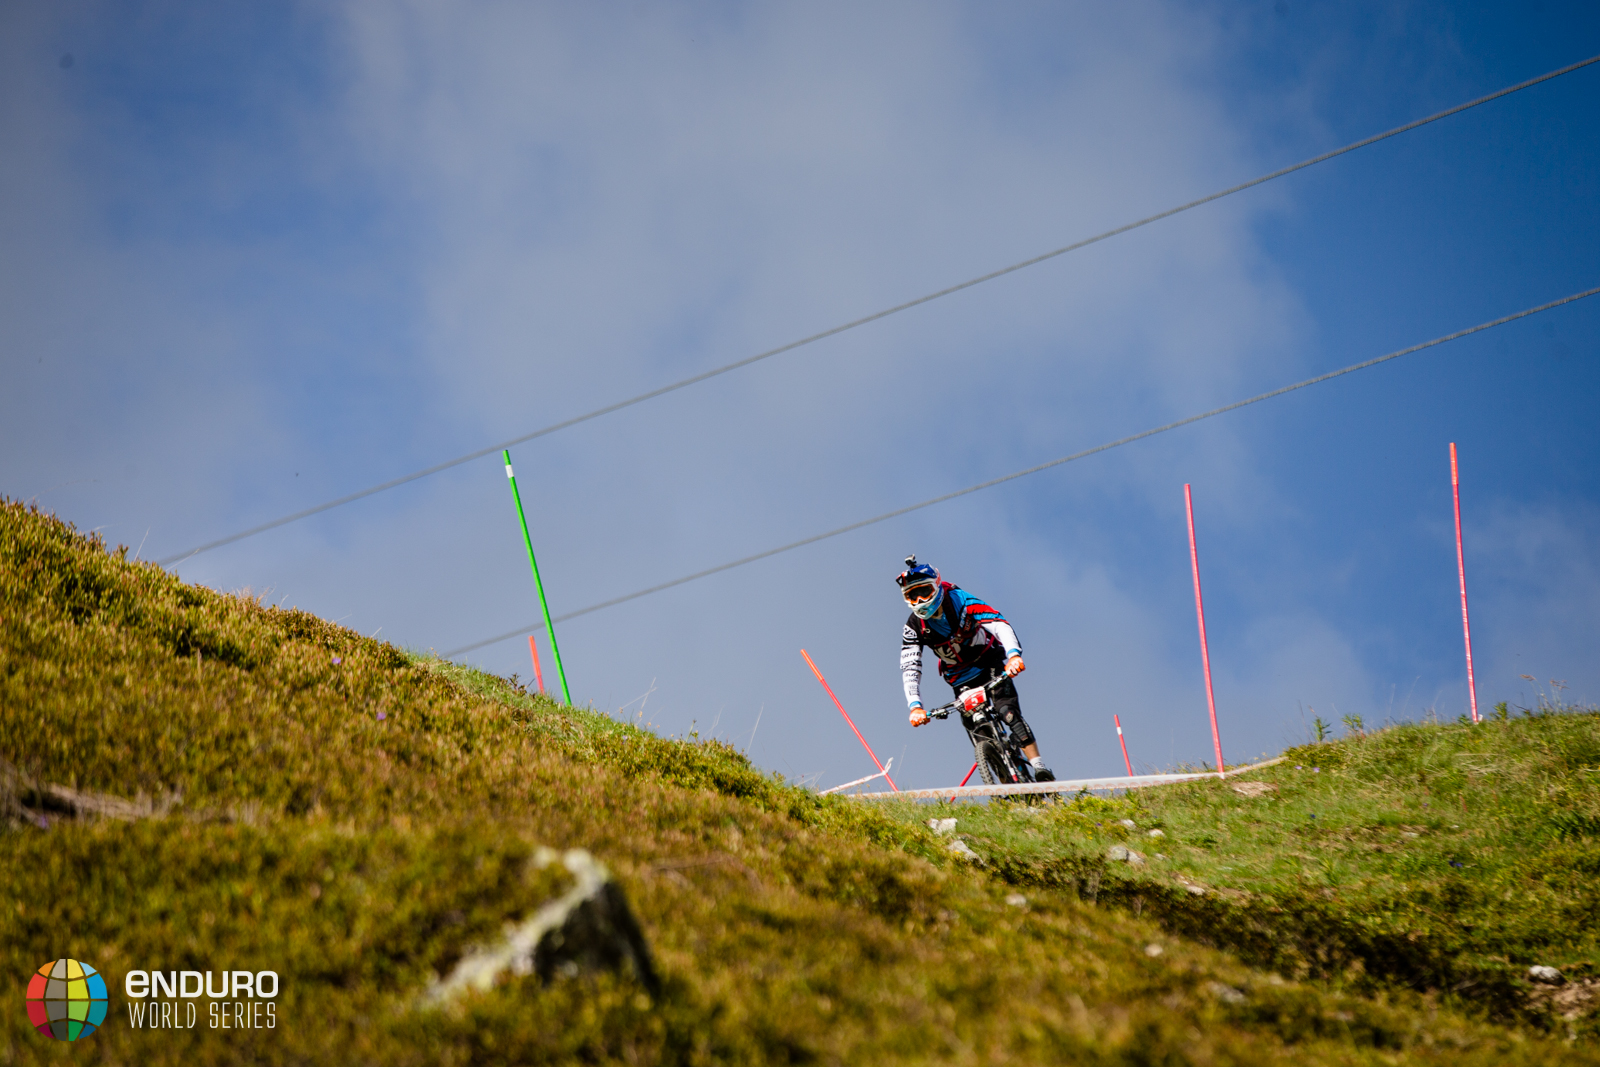 Nico Vouilloz on stage three, EWS round 3 2014, Valloire. Photo by Matt Wragg